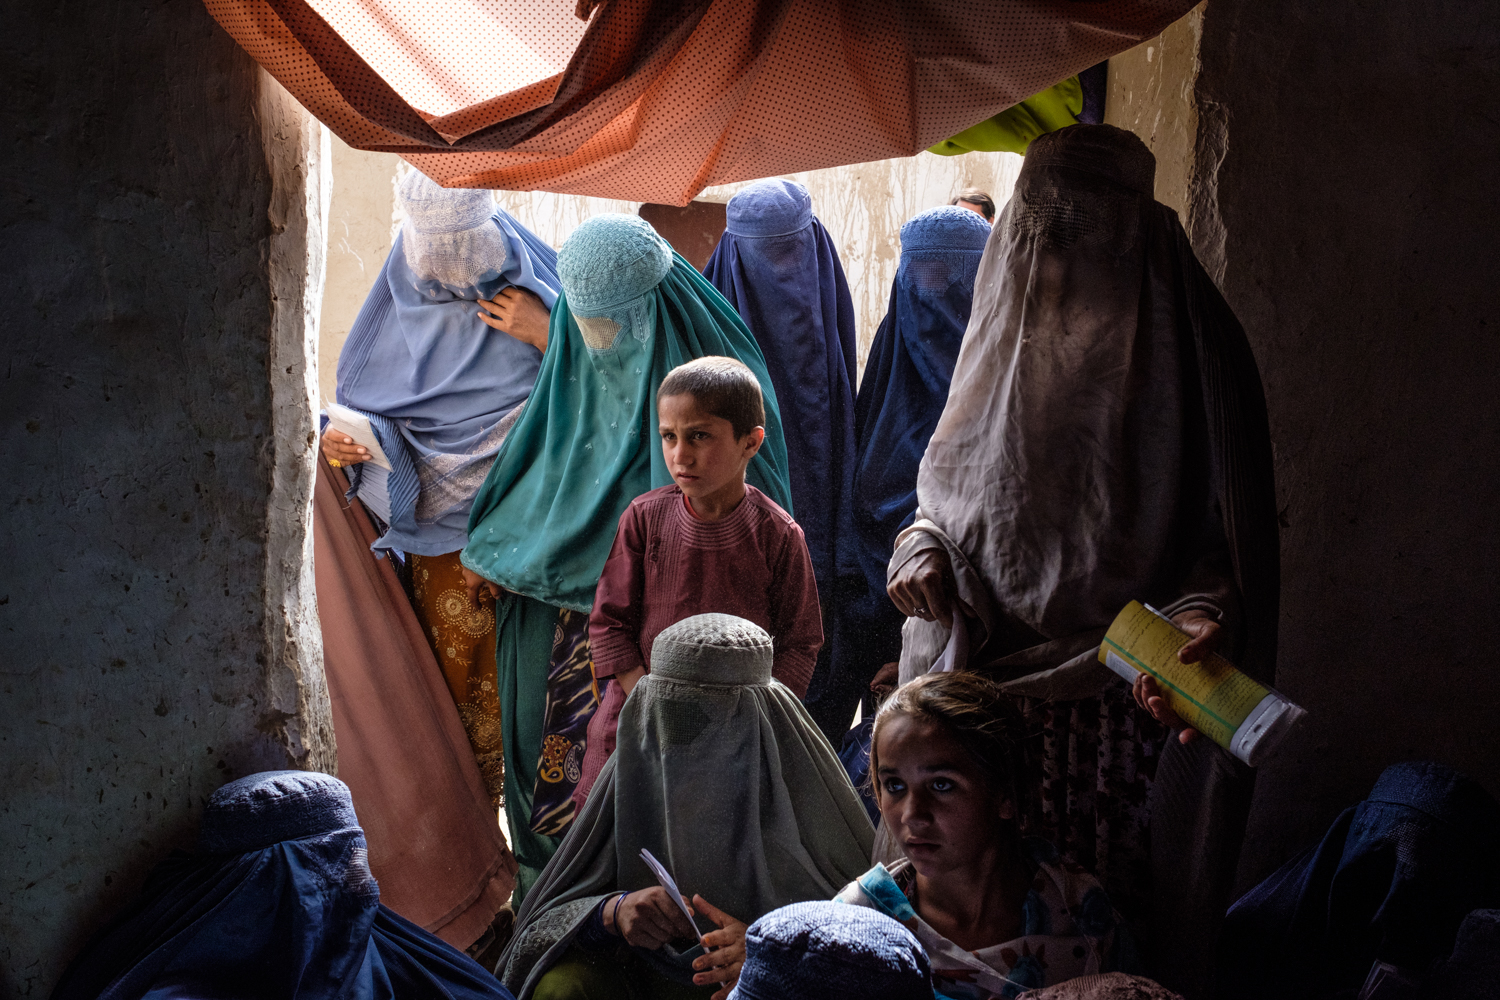 Afghan women, all IDPs, recently forced to leave their adopted homes in Pakistan. Kandahar City, 2018.